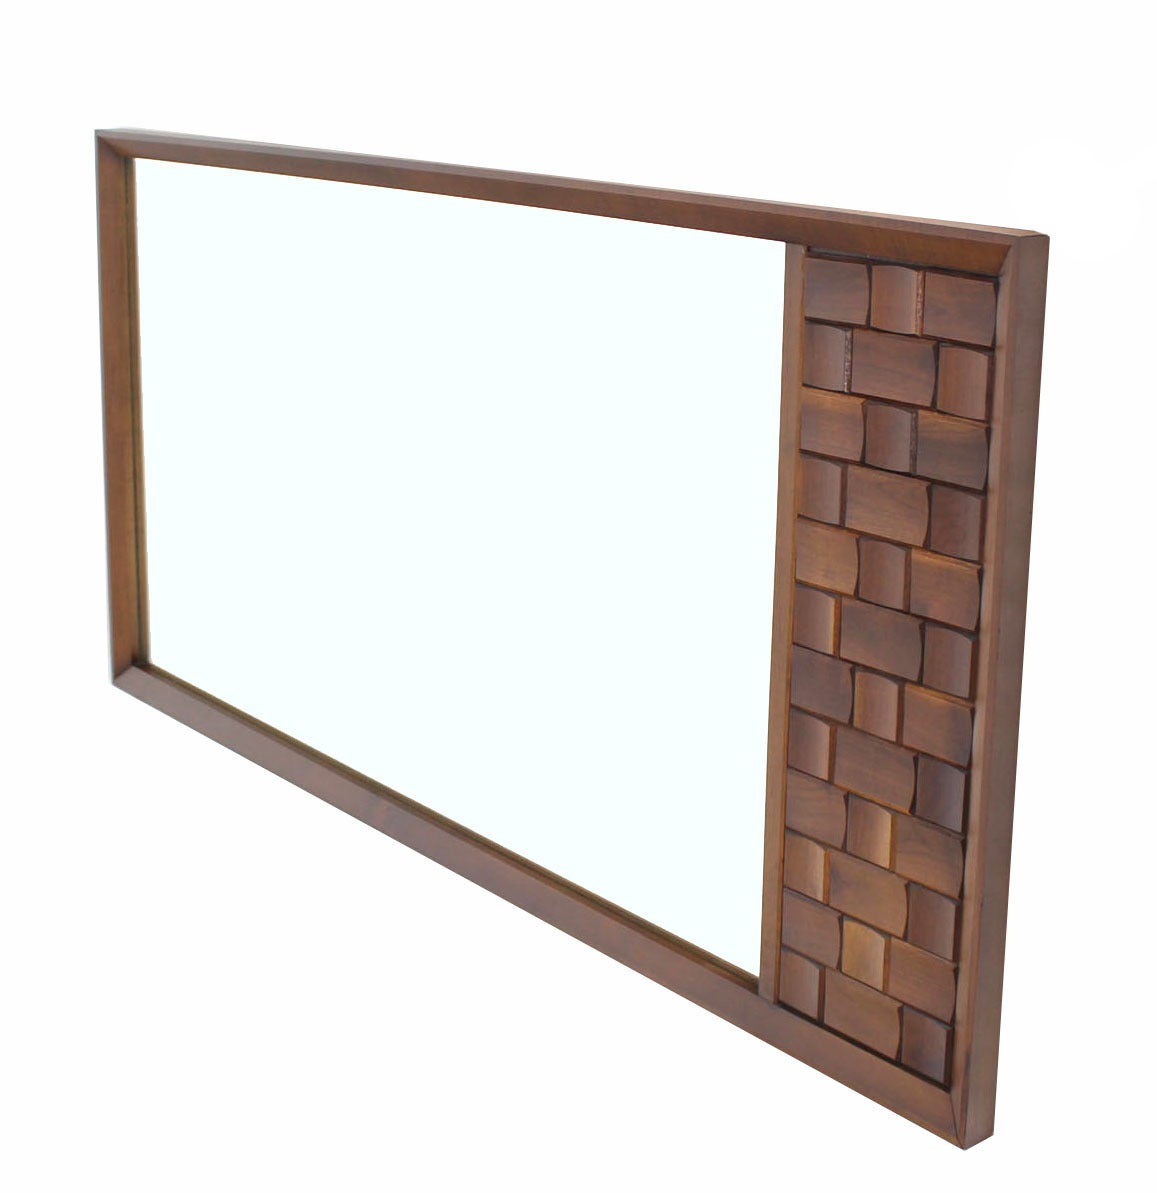 Nice large vintage mid-century modern mirror with solid walnut decorative carving panel.